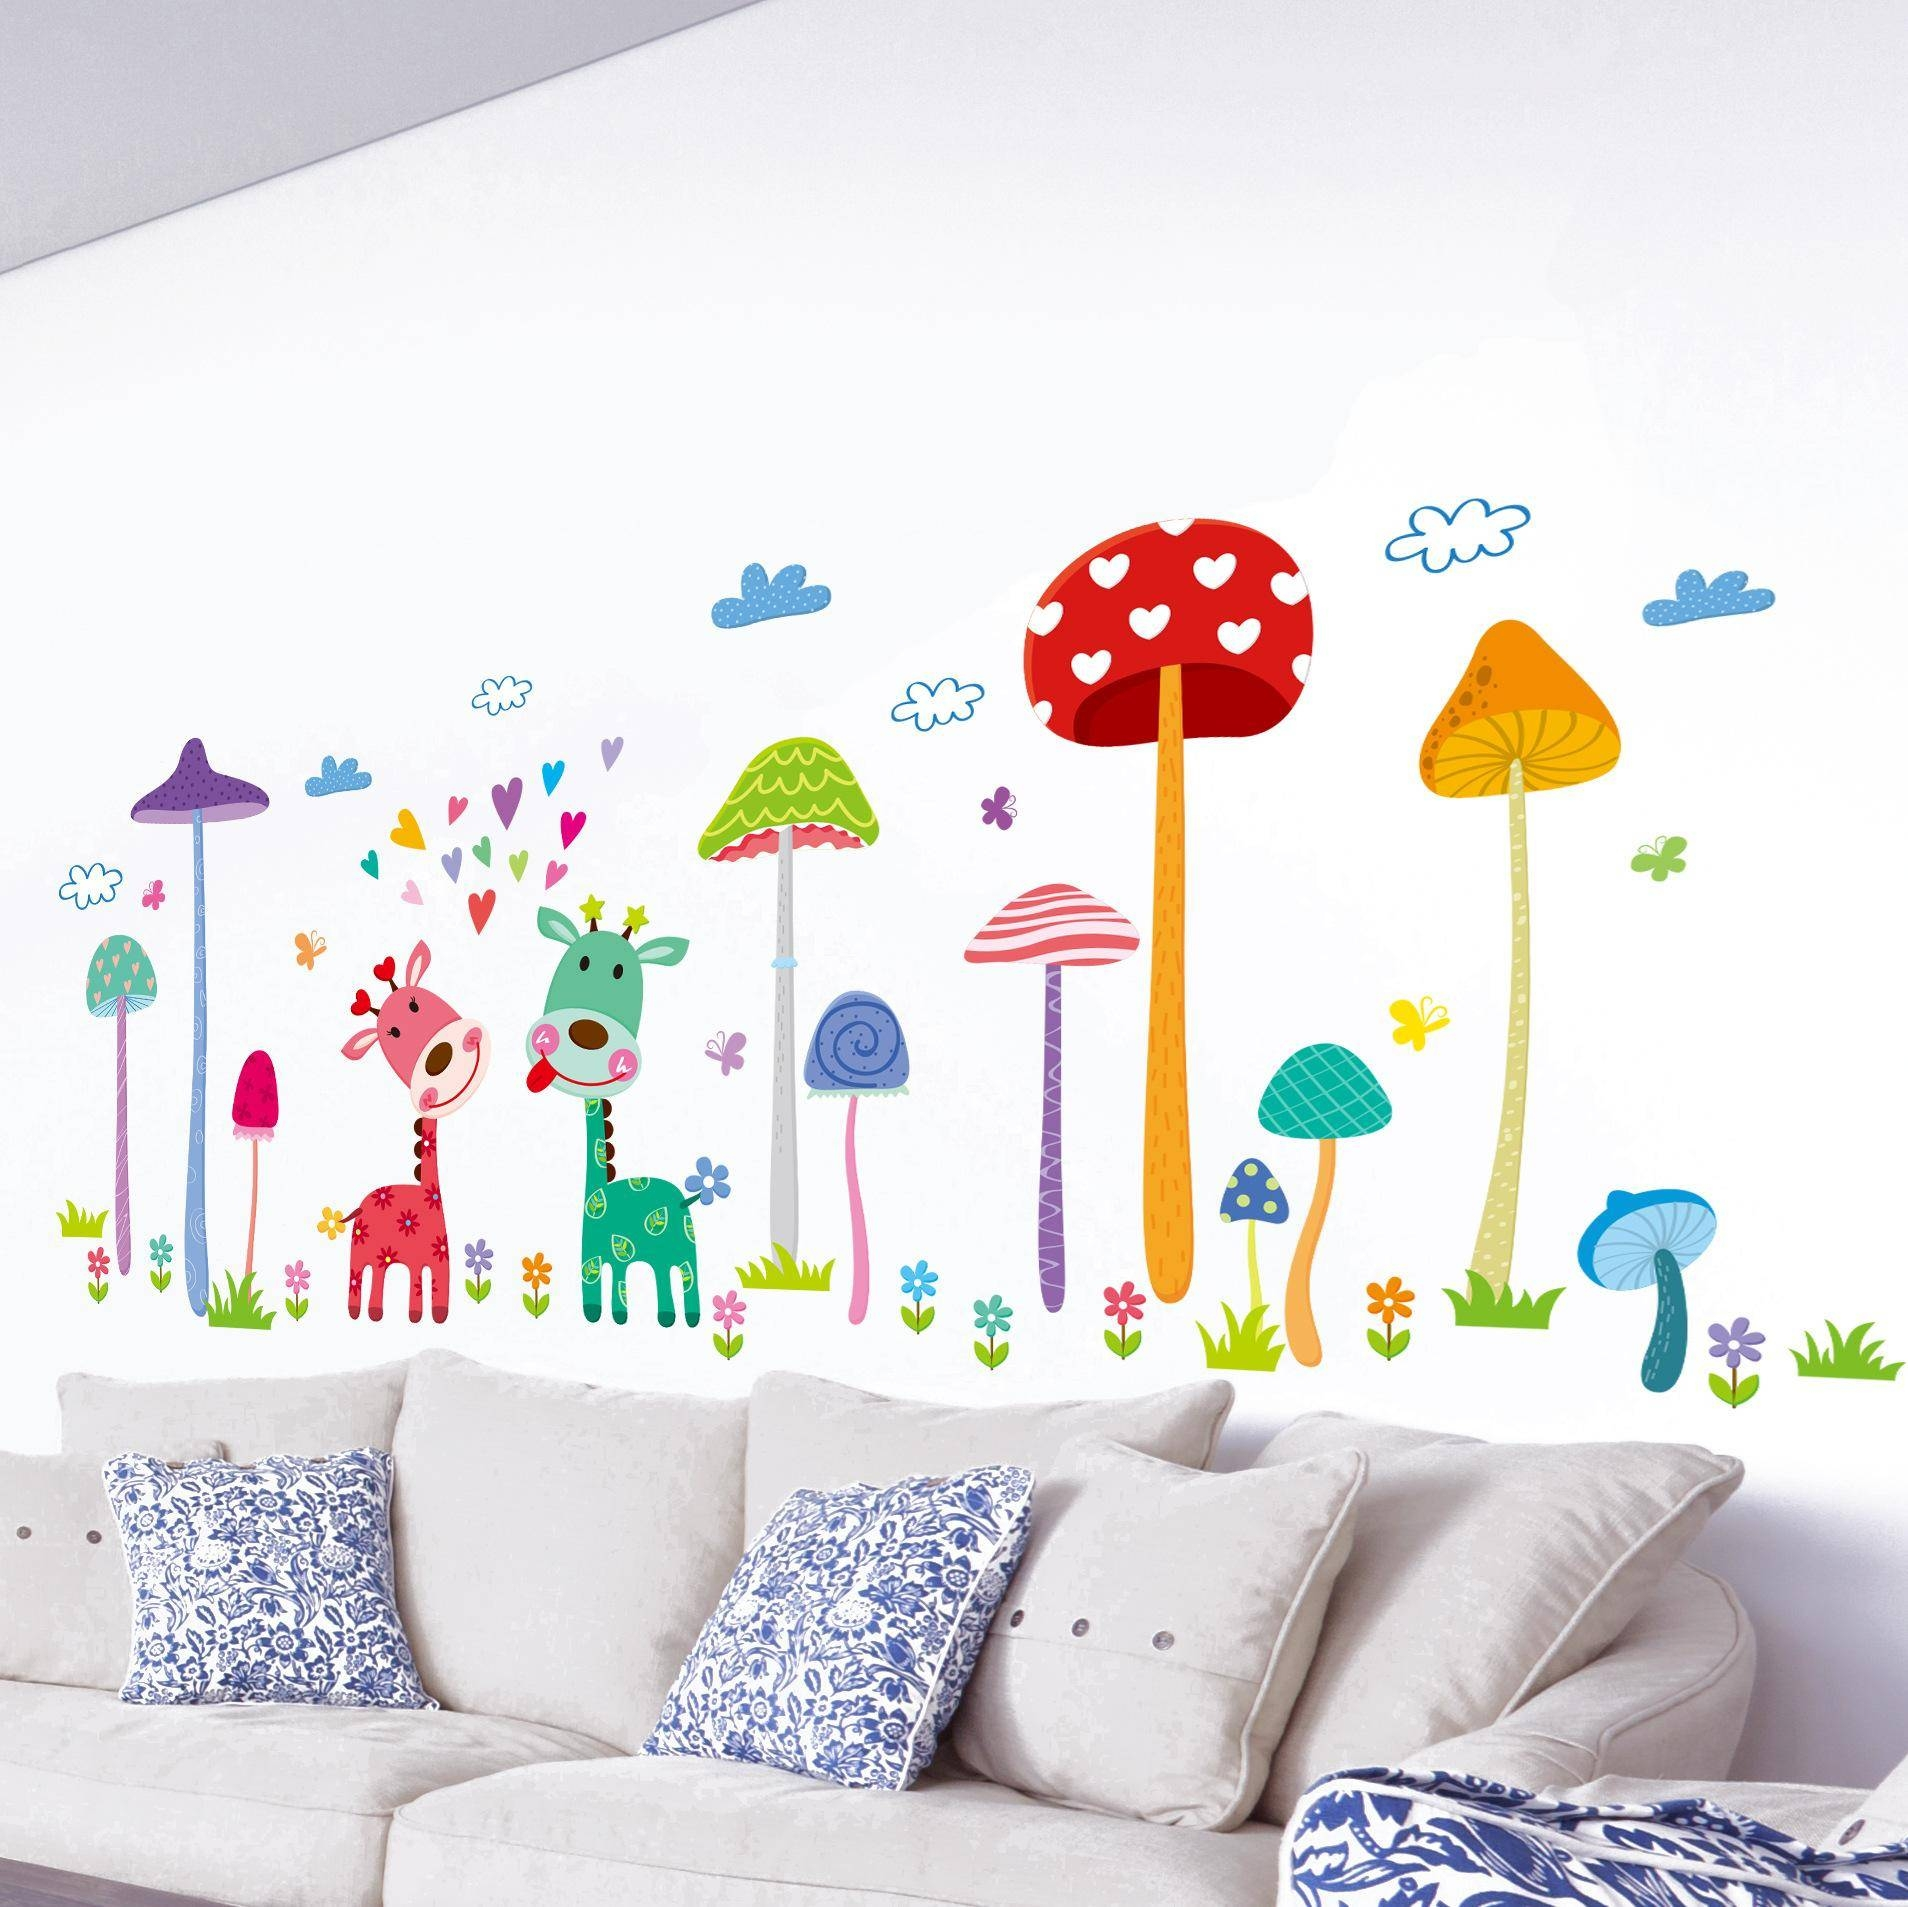 Forest Mushroom Deer Home Wall Art Mural Decor Kids Babies Room Throughout Newest Wall Art Stickers For Childrens Rooms (View 6 of 20)